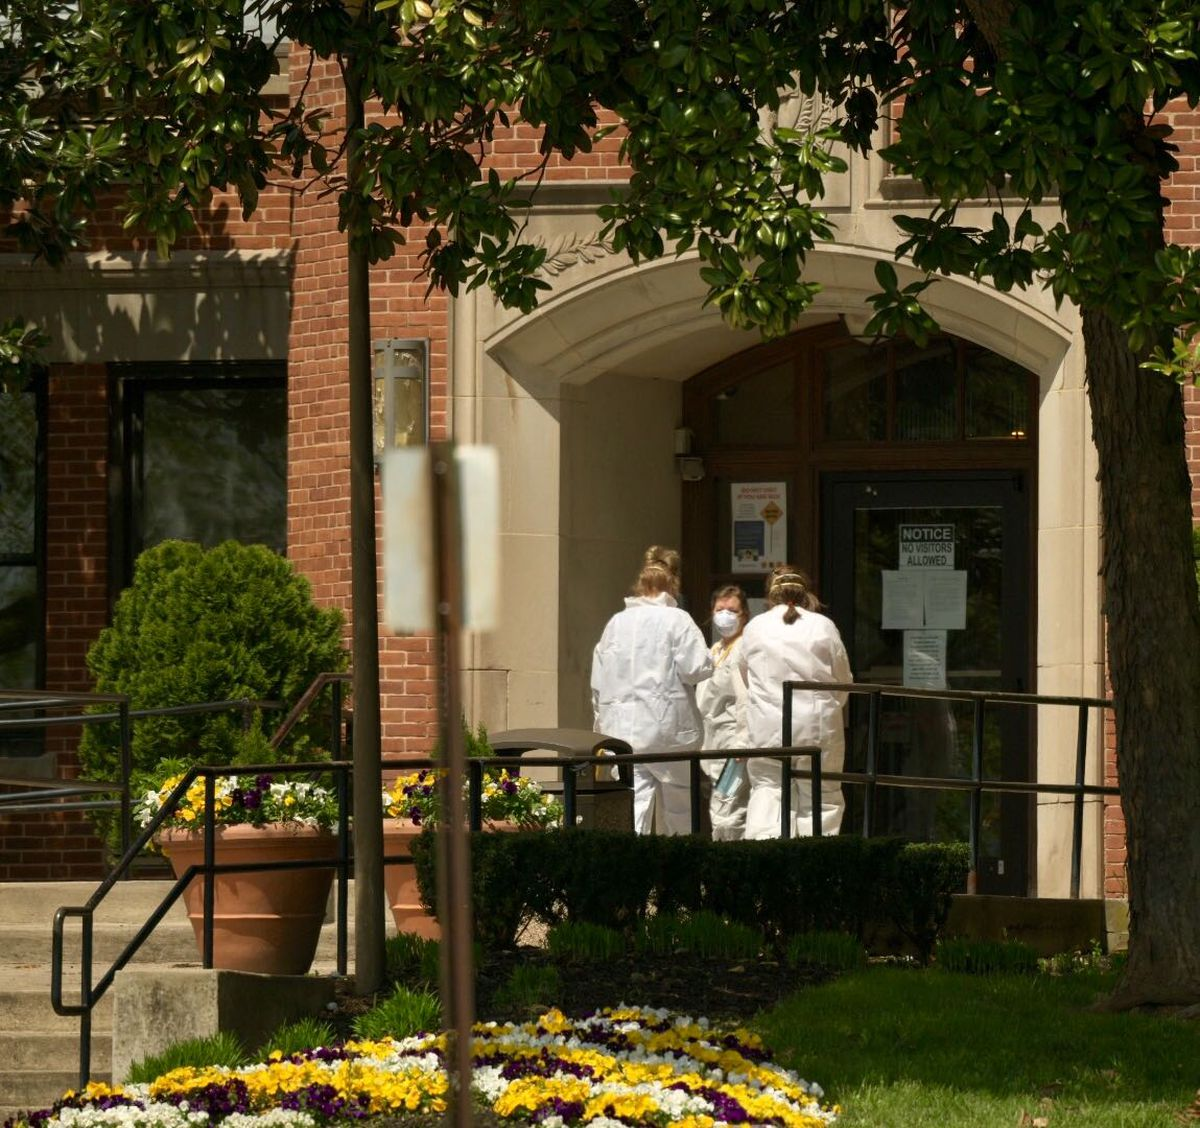 170 coronavirus cases confirmed at FutureCare Lochearn in Baltimore in largest nursing home outbreak in state